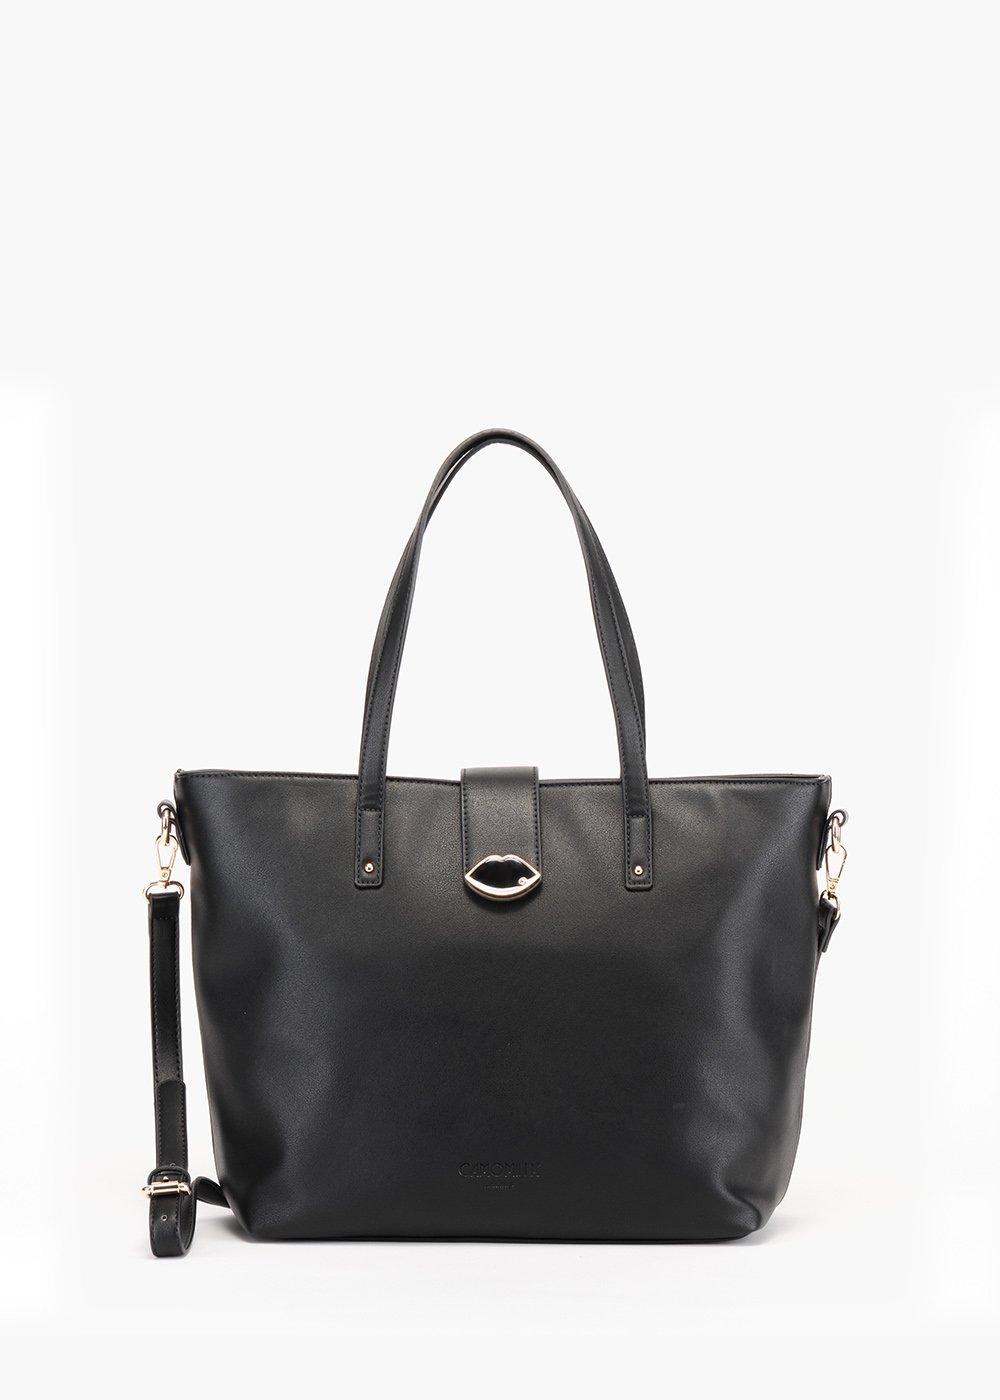 Banny shopping bag in eco leather with zip closure